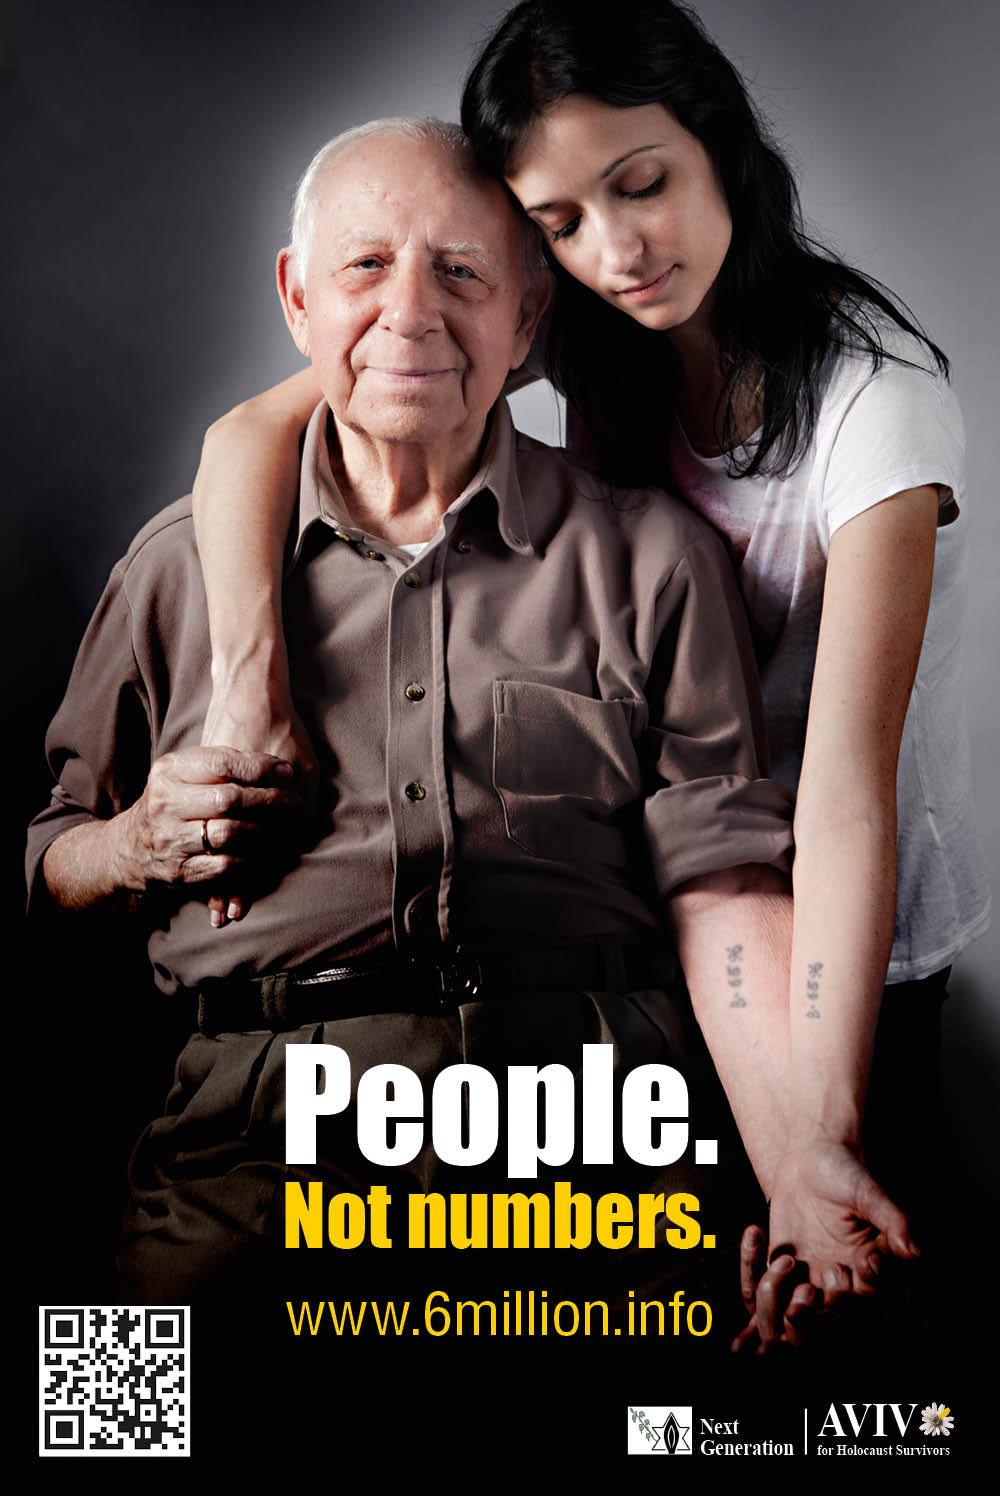 Aviv for Holocaust Survivors & Next Generation Print Ad -  People. Not numbers. 2